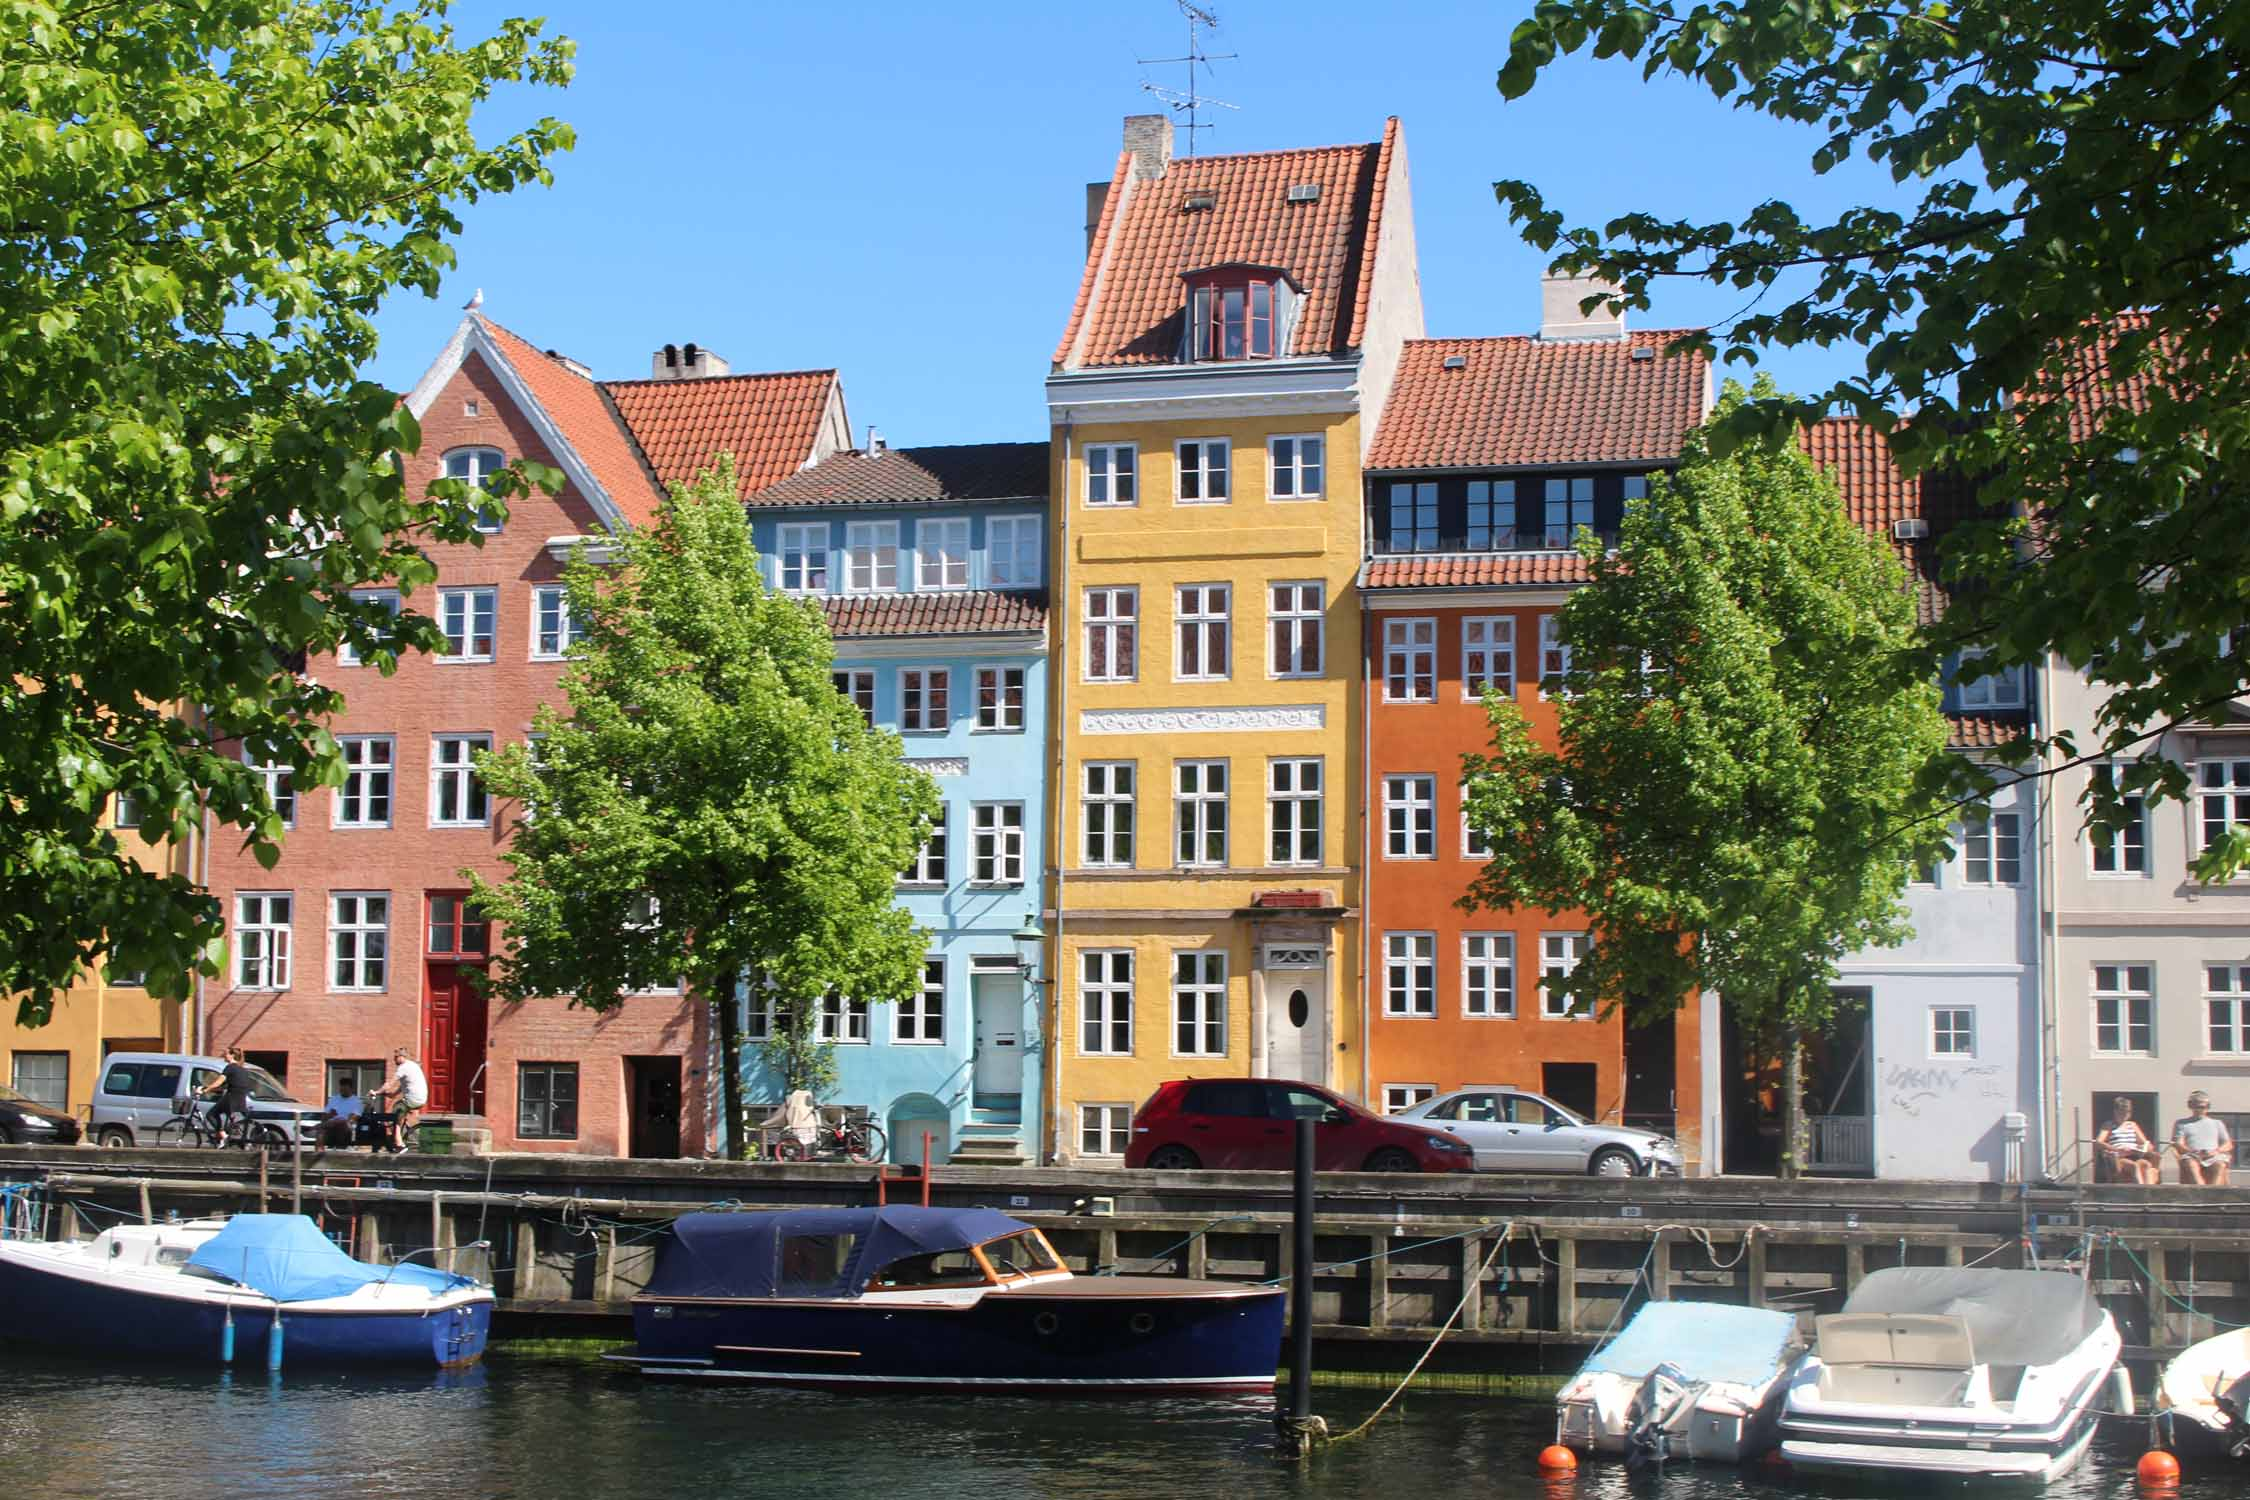 Copenhagen, canal, Christianhavns, coloured houses